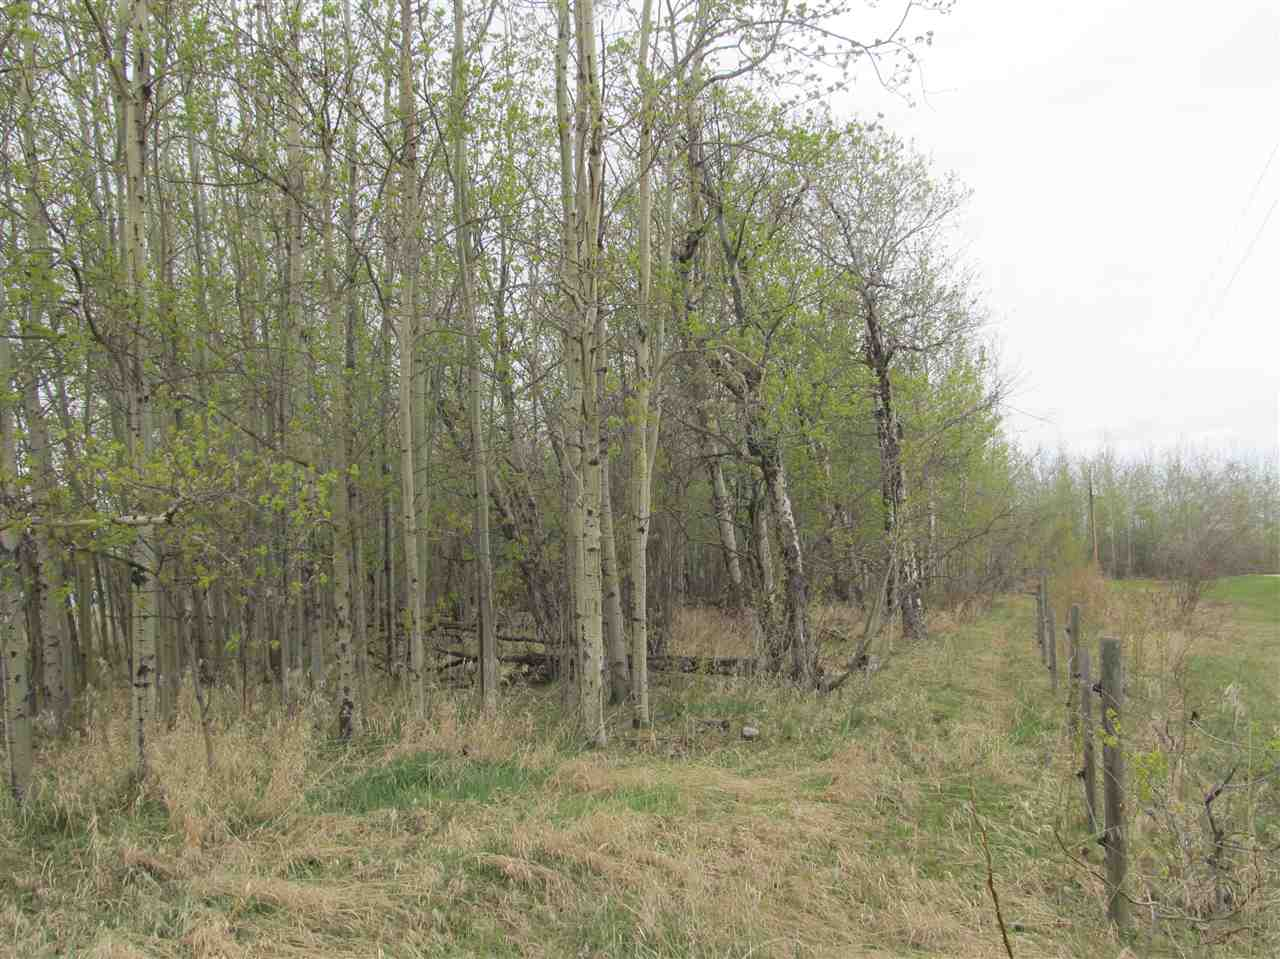 Photo 3: 19 22515 Twp Rd 575A: Rural Sturgeon County Rural Land/Vacant Lot for sale : MLS(r) # E4061245